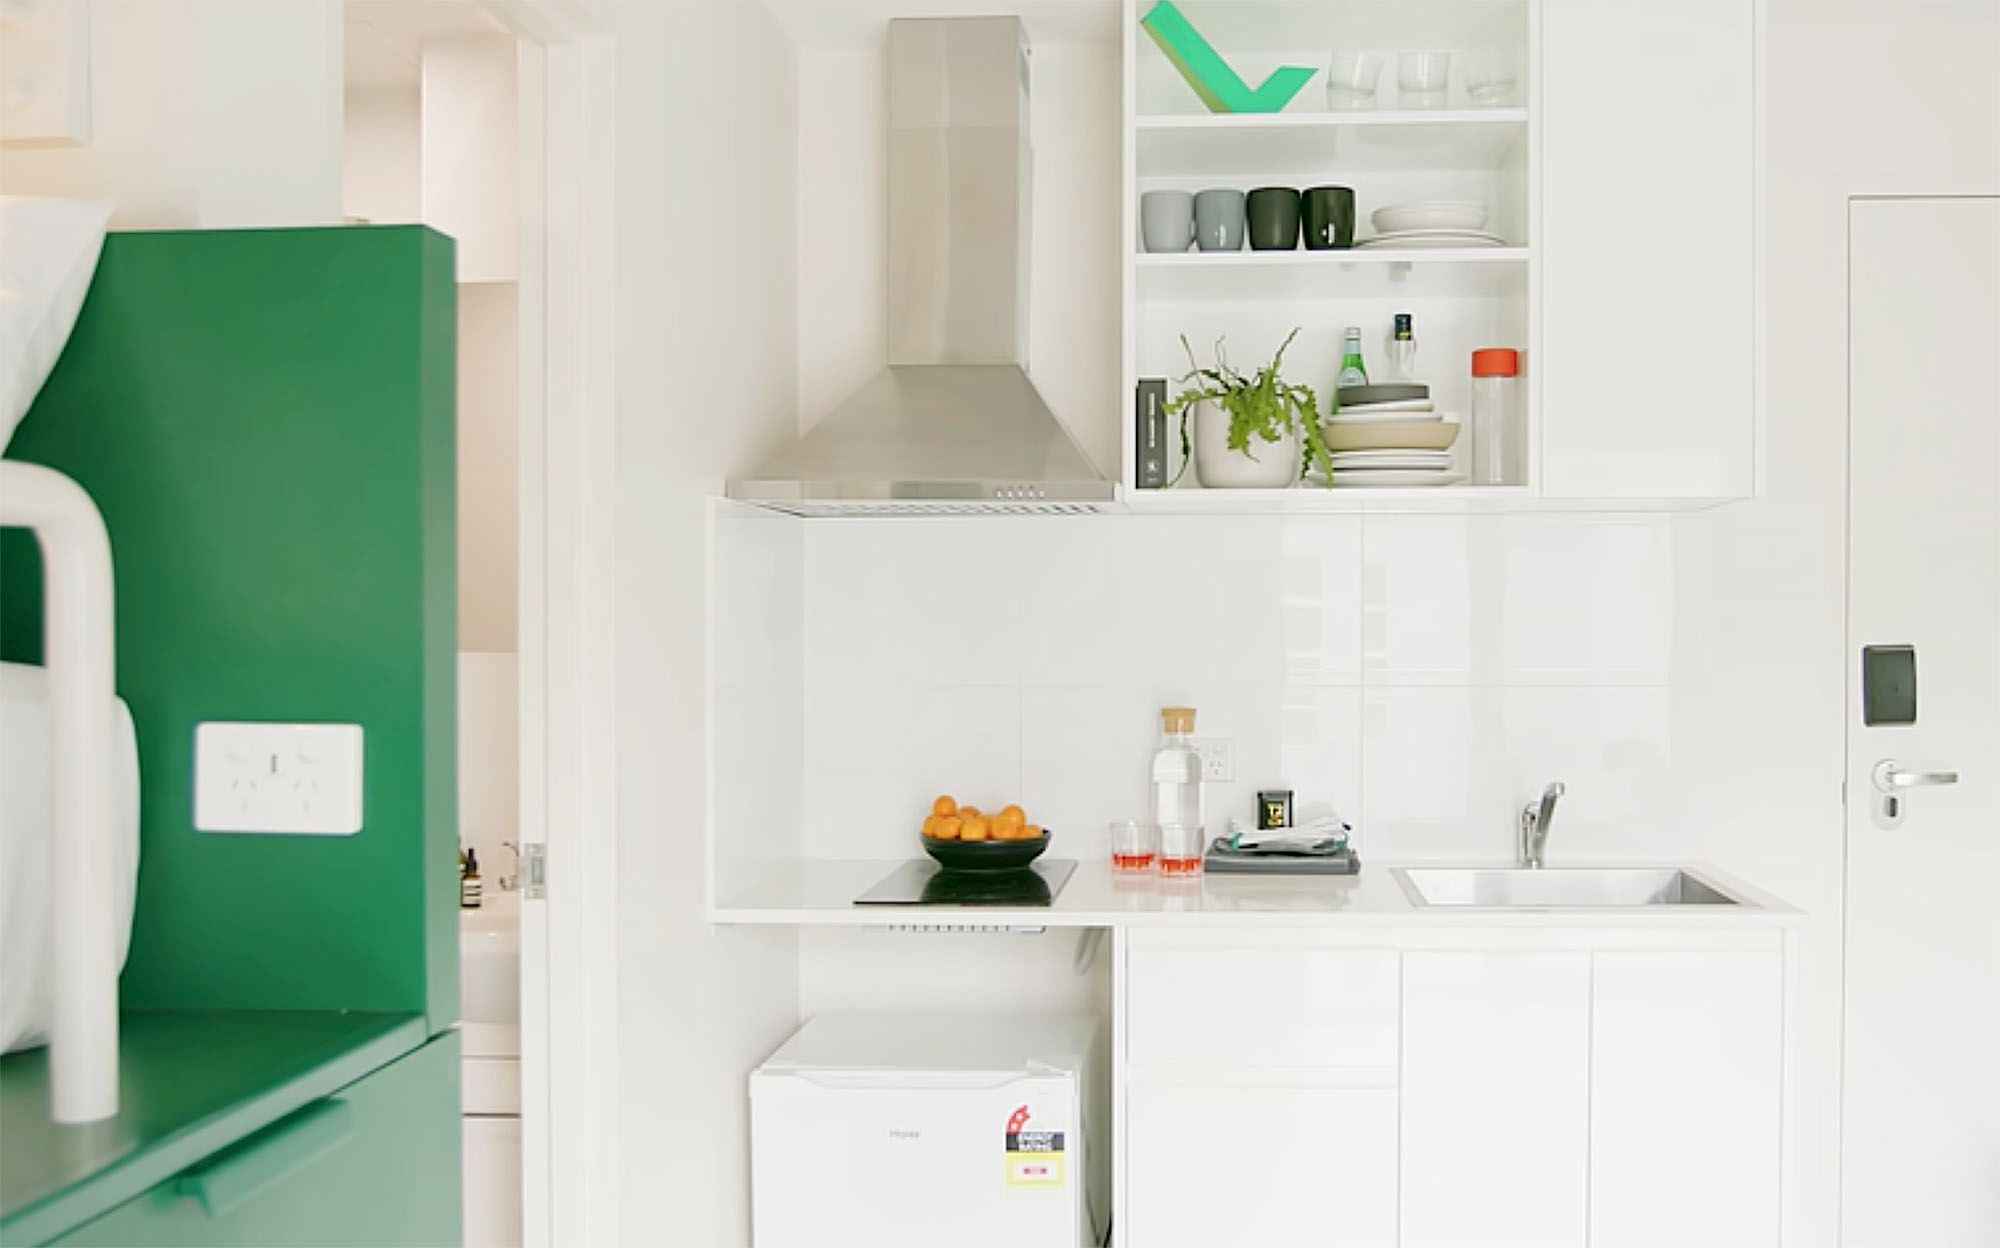 UKO stanmore coliving micro-apartment Mostaghim Associates kitchenette